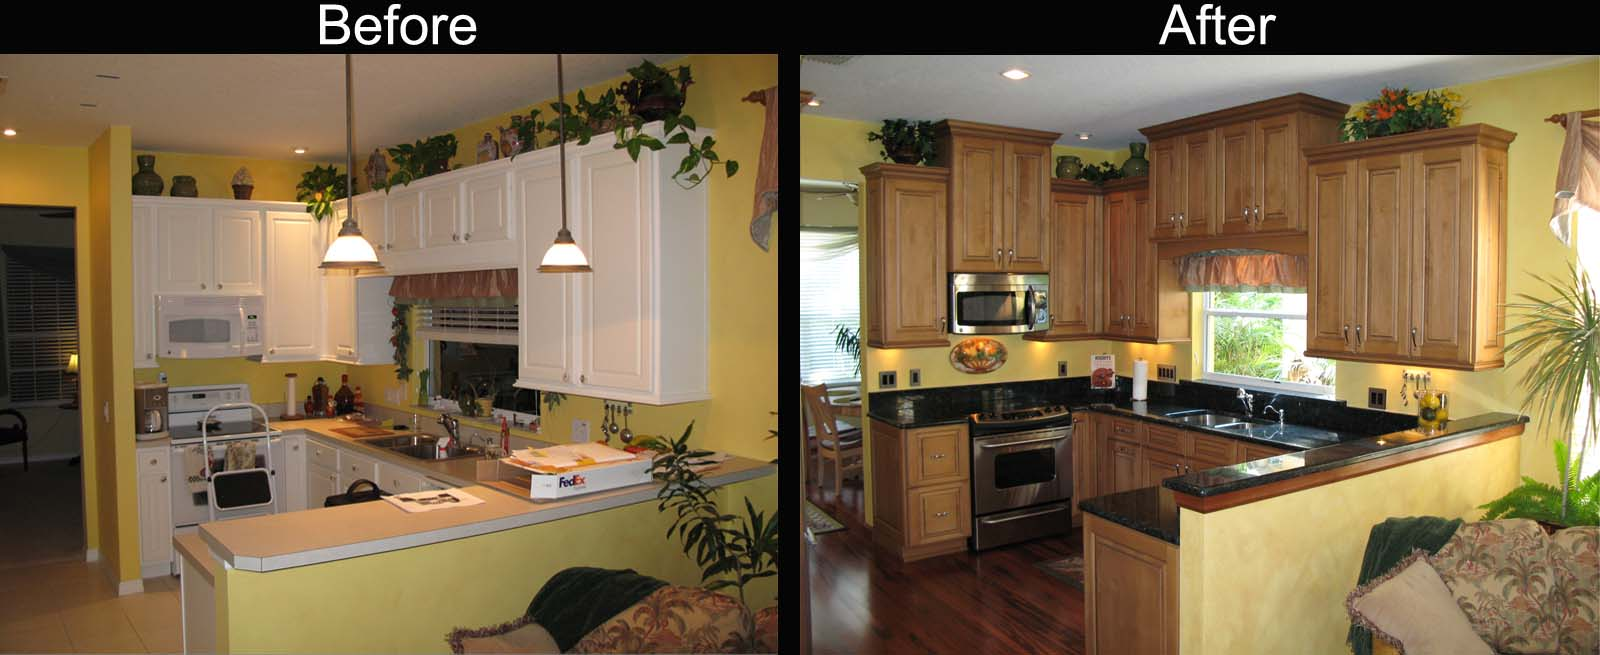 Elegant Painted Cabinets Before and After: Ideas for Your Kitchen Renovation:  Painted home renovation before and after